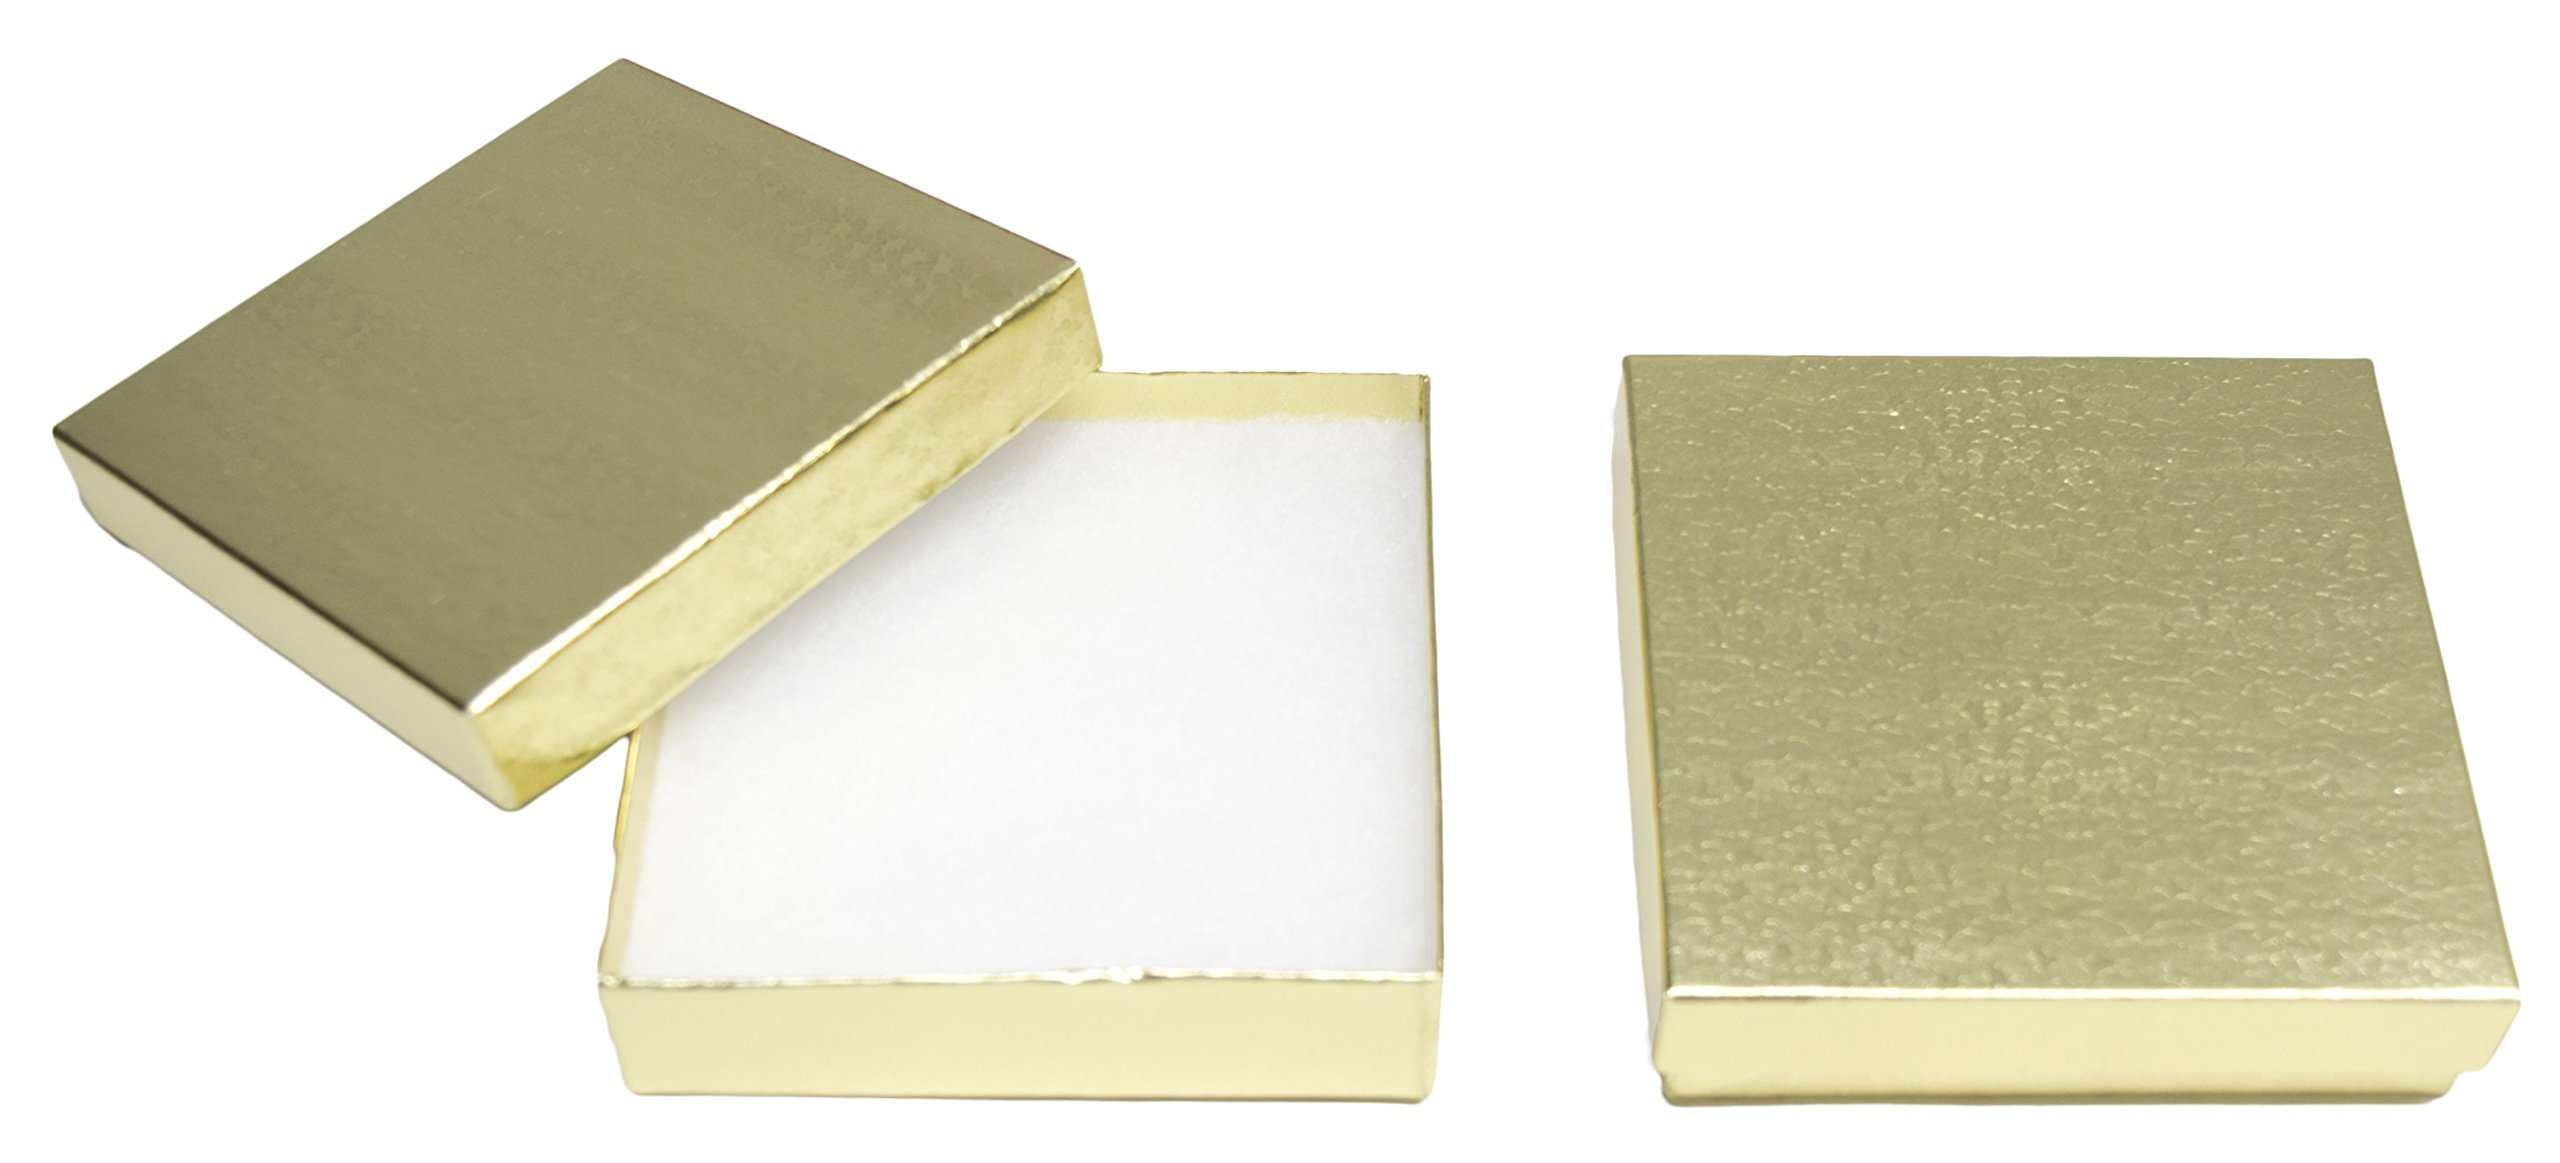 Novel Box MADE IN USA Jewelry Gift Box in Gold With Removable Cotton Pad 3.5X3.5X0.9'' (Pack of 15) + NB Cleaning Cloth